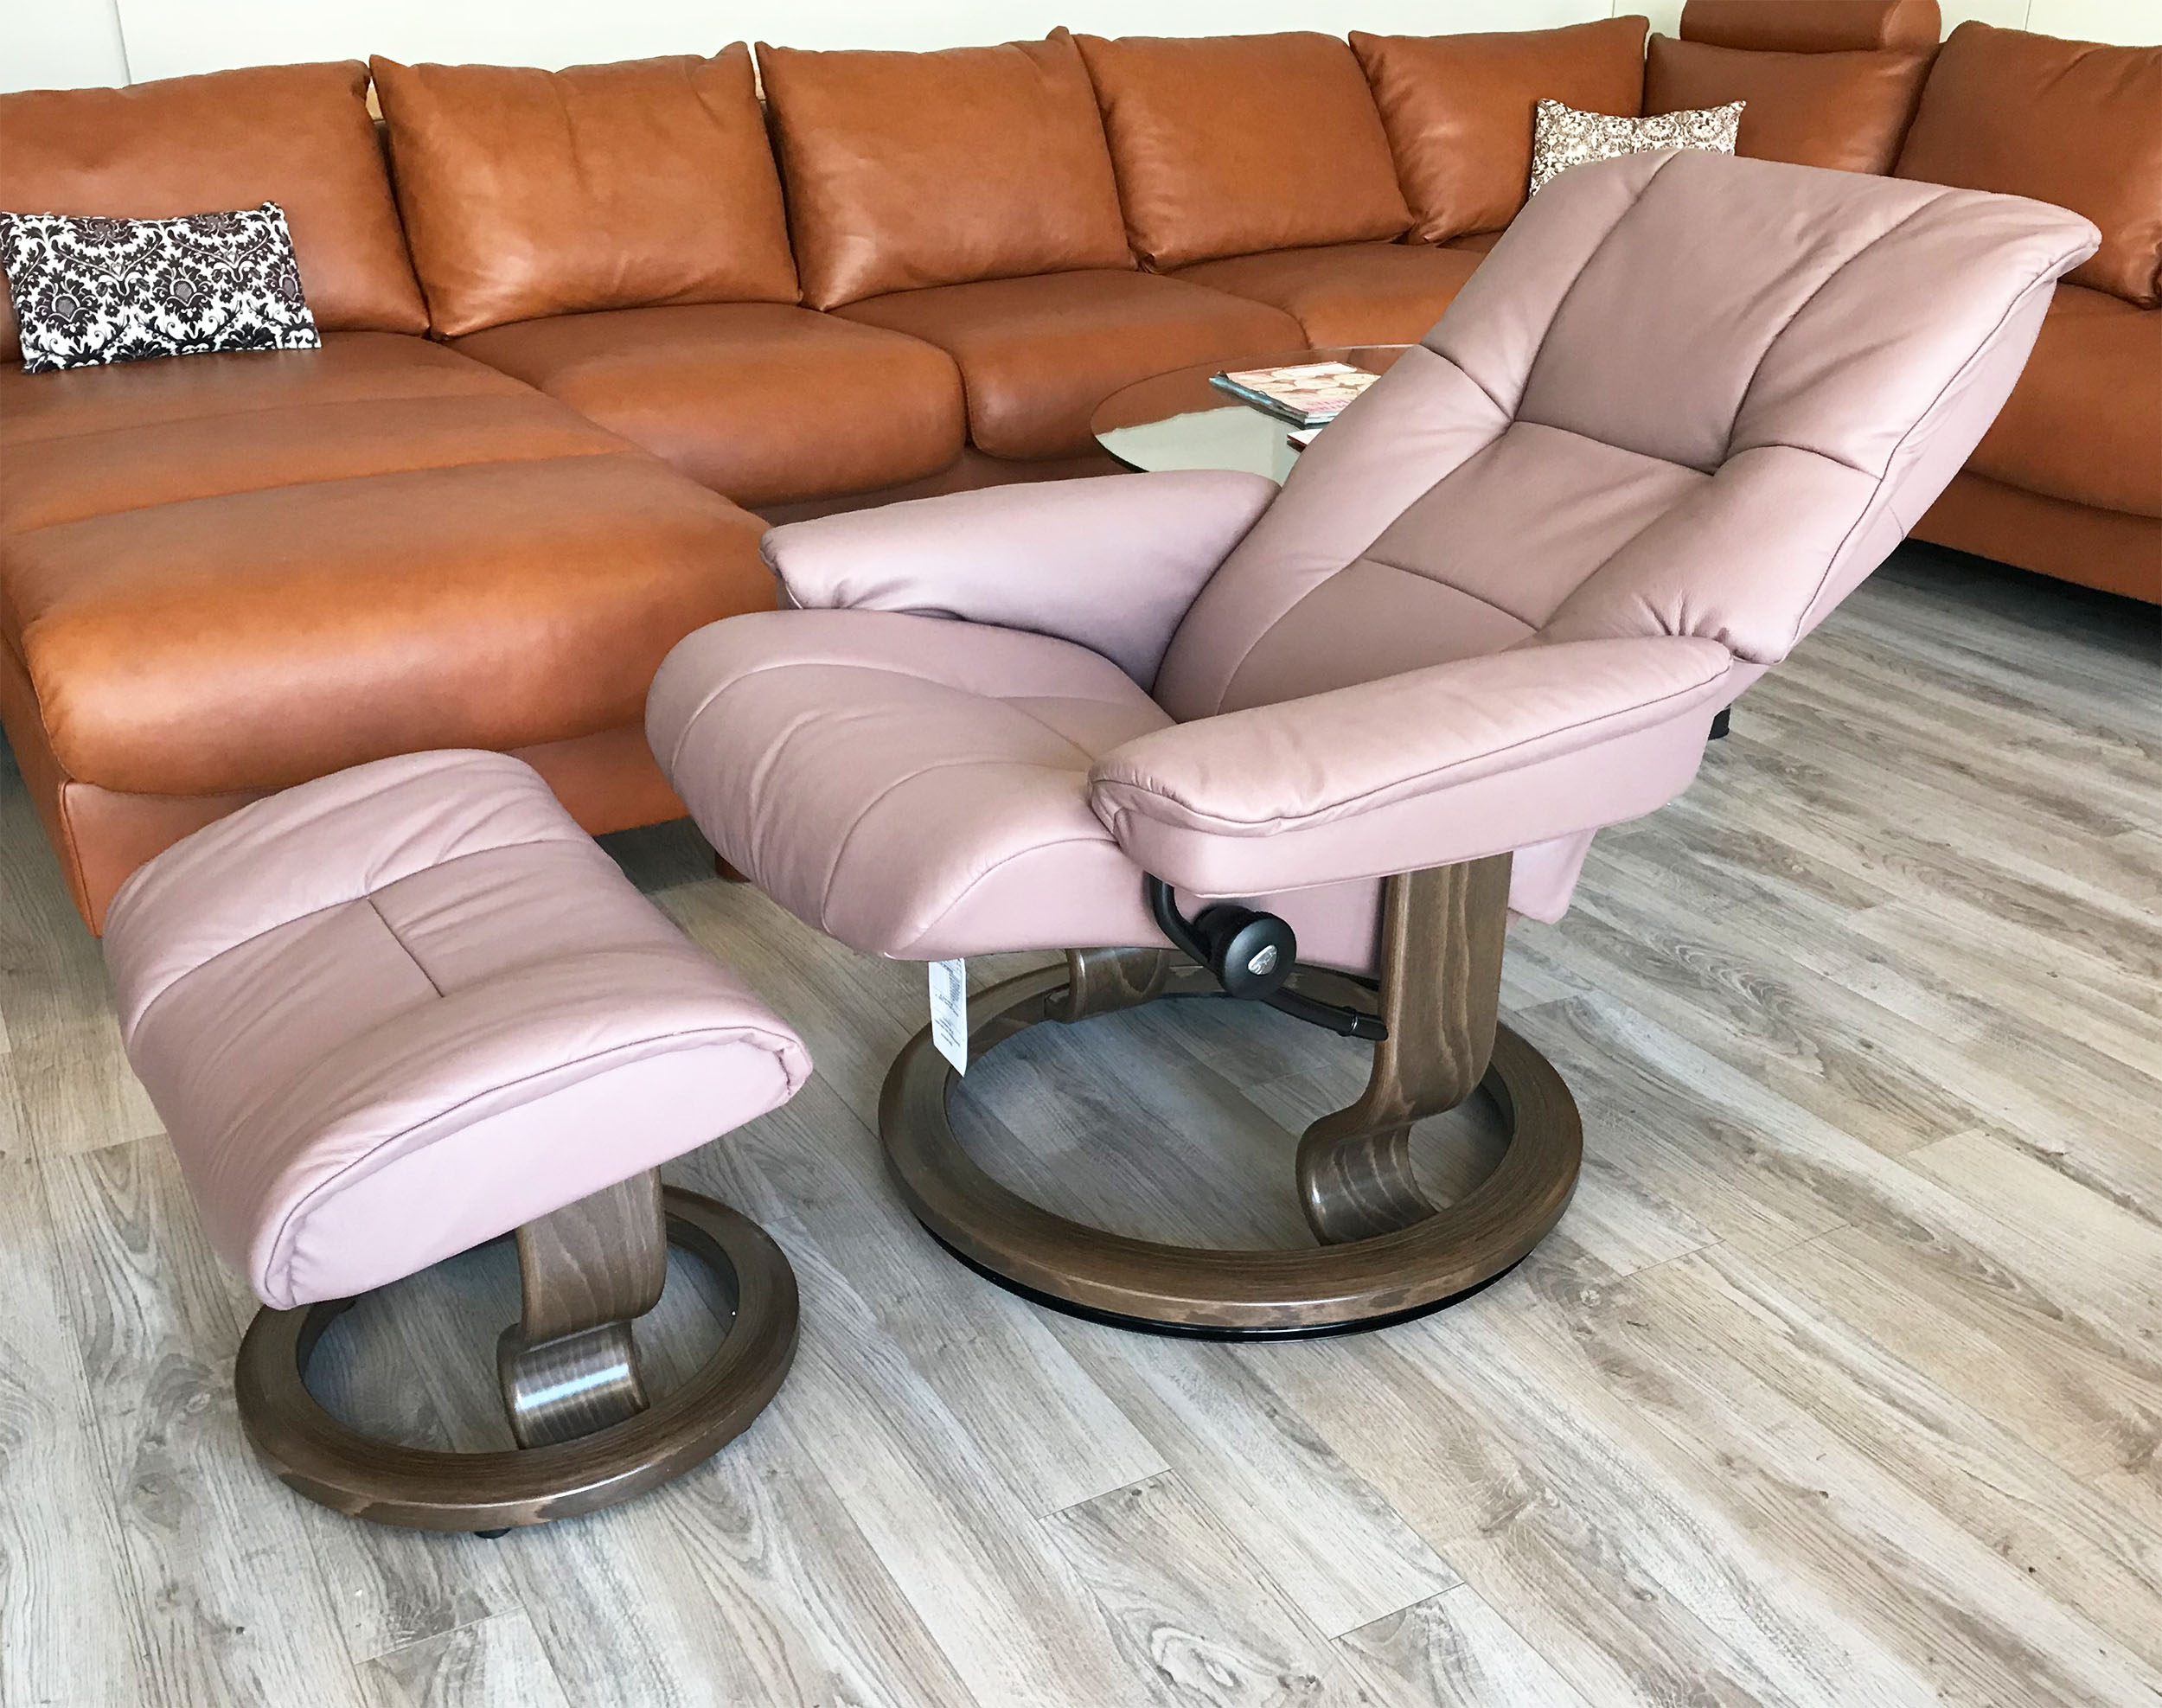 en quick recliners furniture living null and fabric recliner cromwell room free leather us chairs shipping ethan shop chair allen